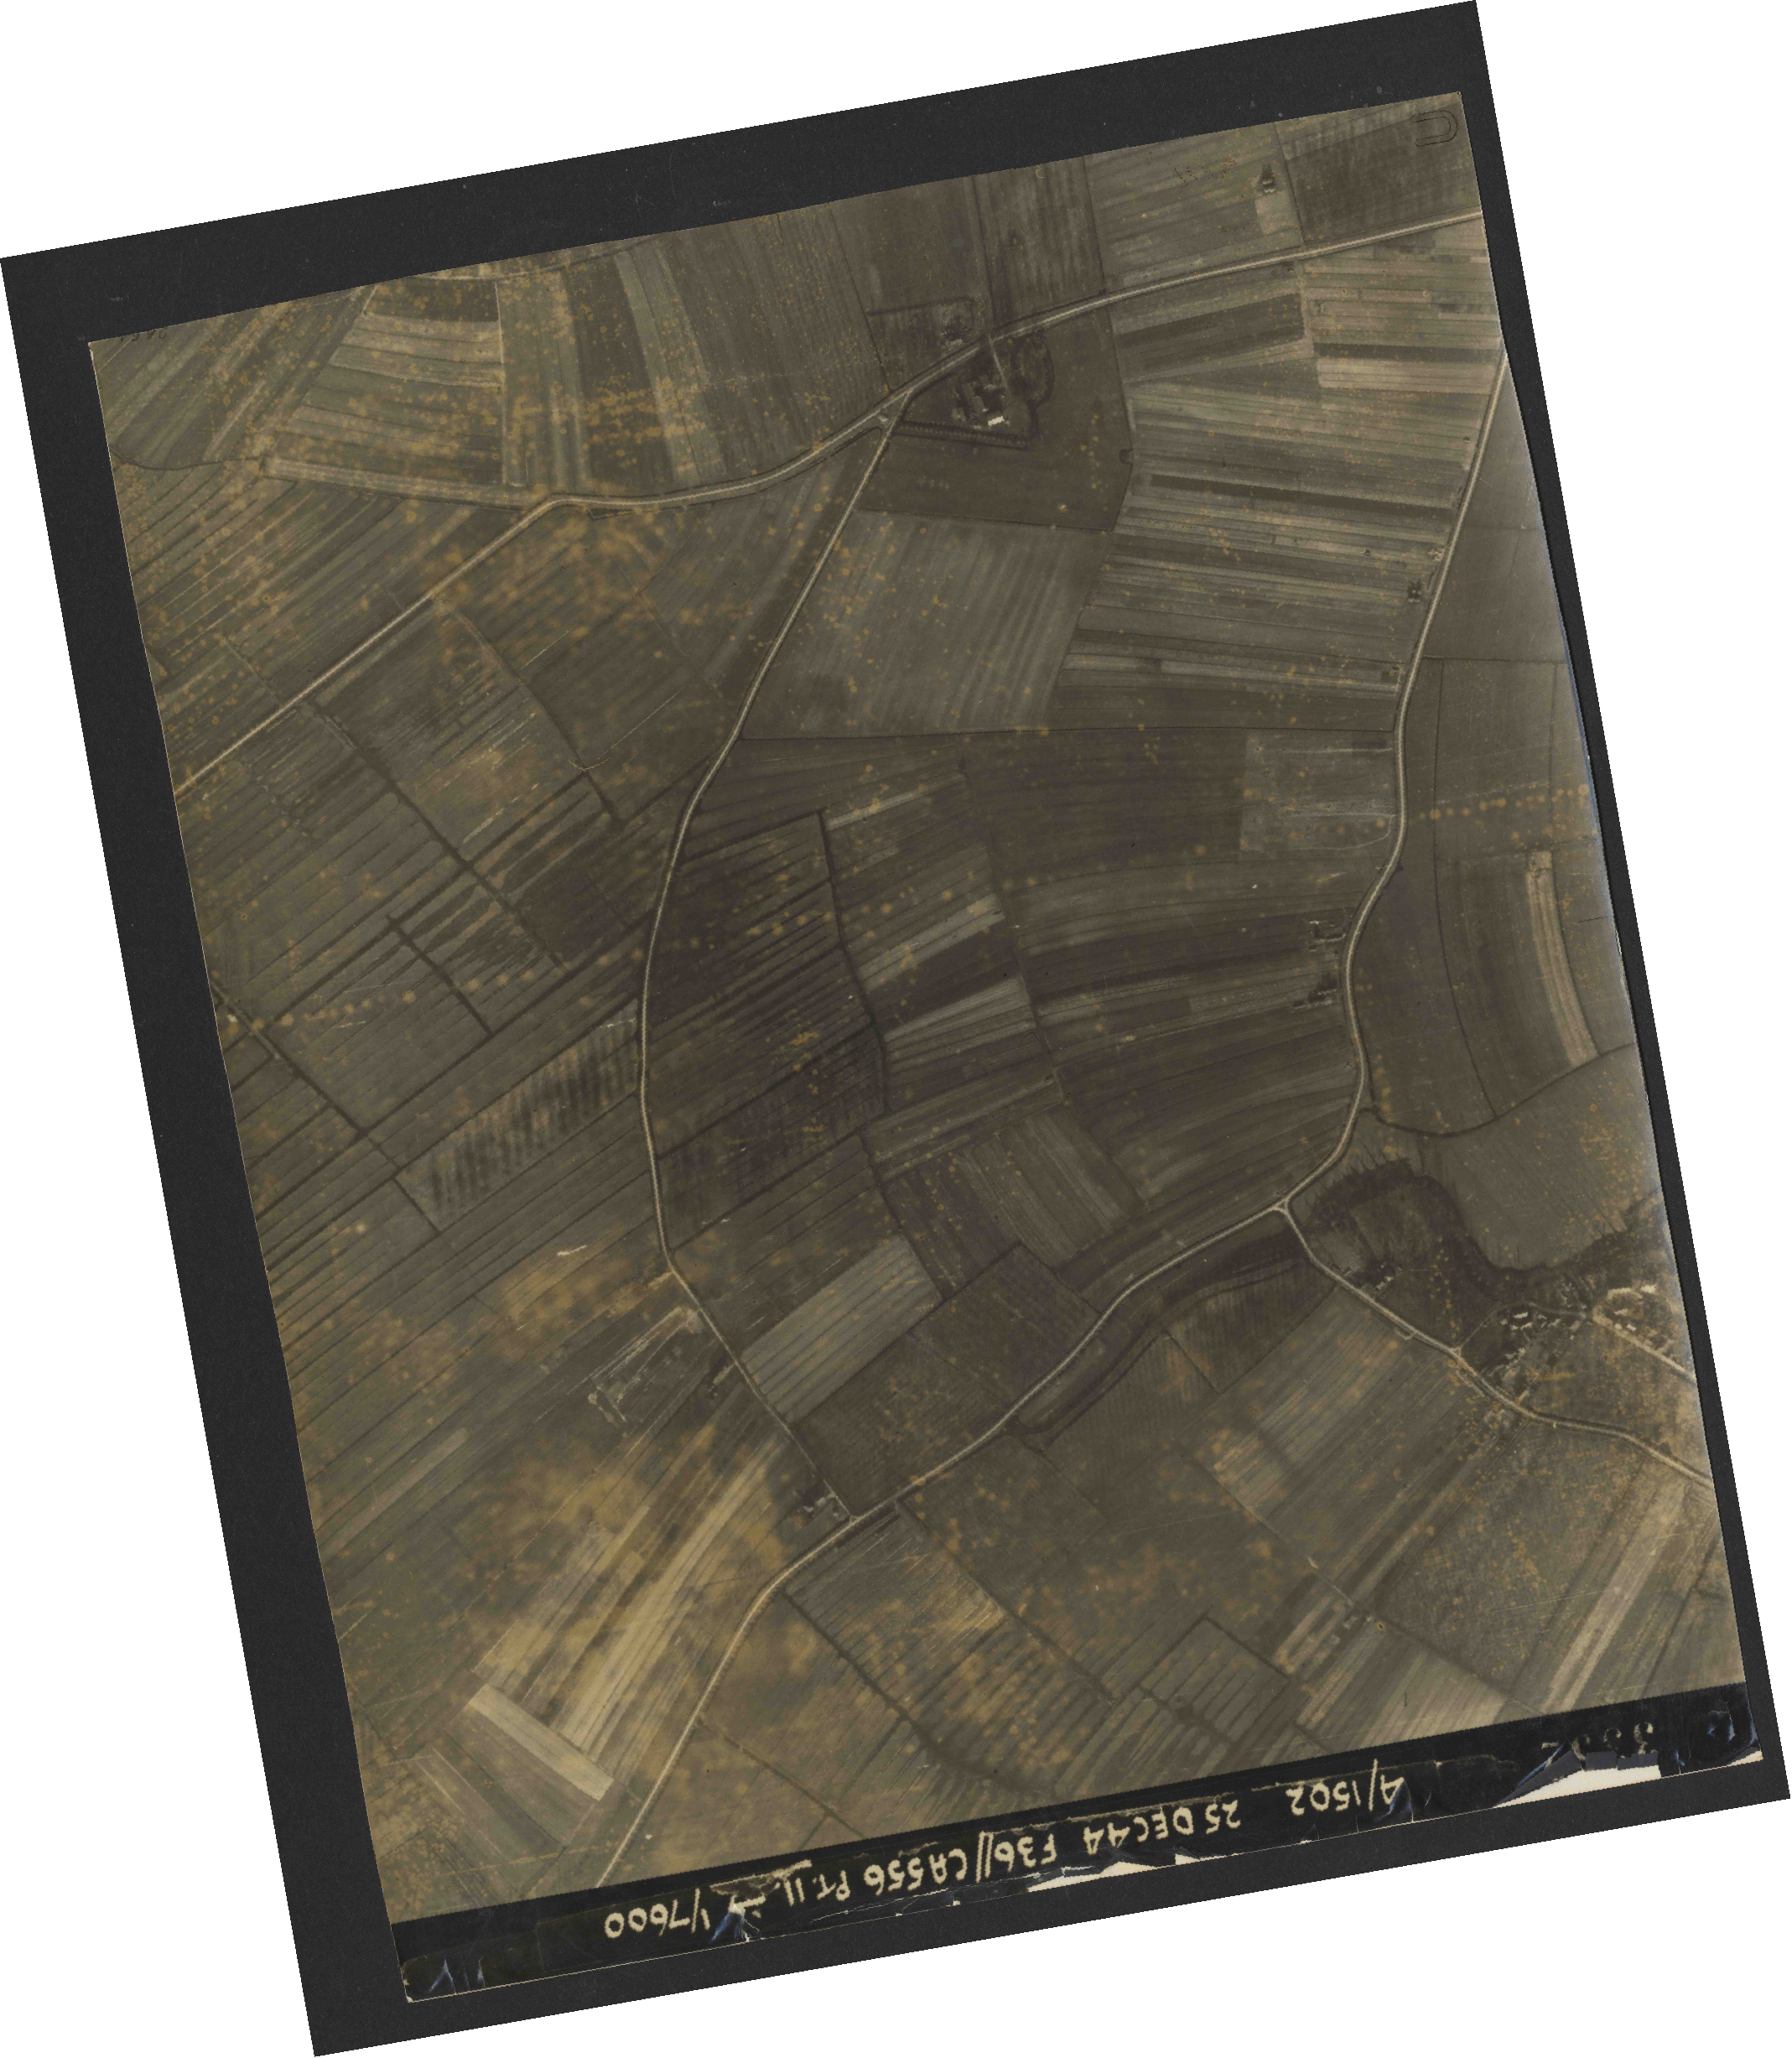 Collection RAF aerial photos 1940-1945 - flight 306, run 12, photo 3352